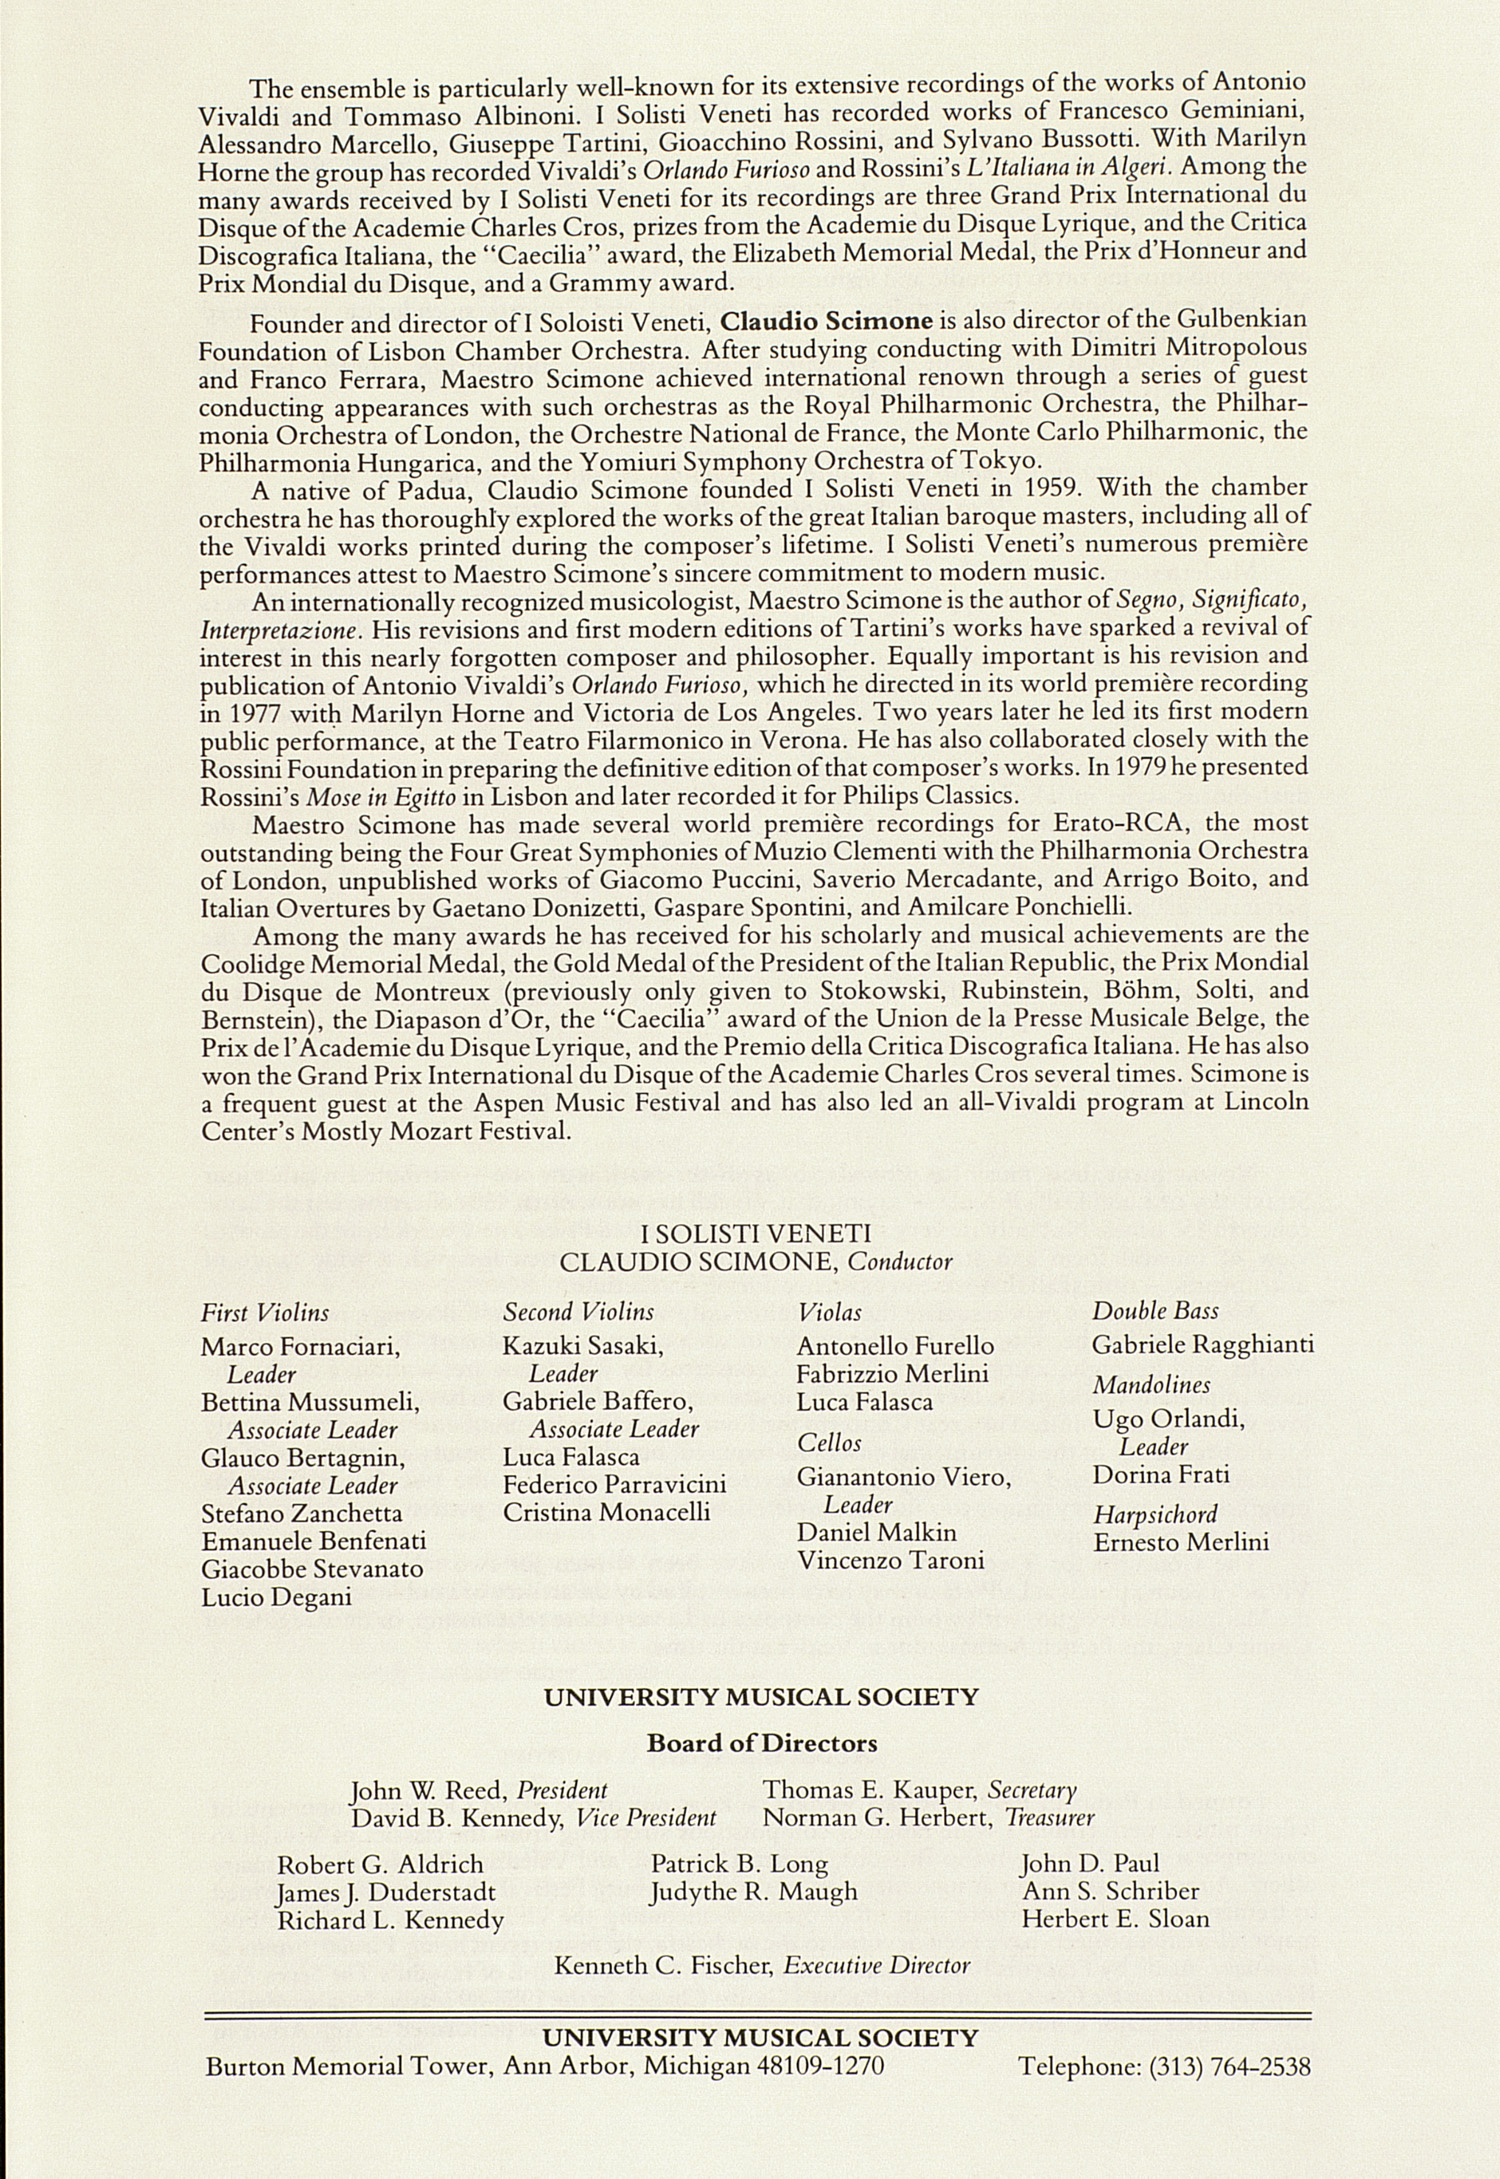 UMS Concert Program, December 6, 1988: I Solisti Veneti --  image